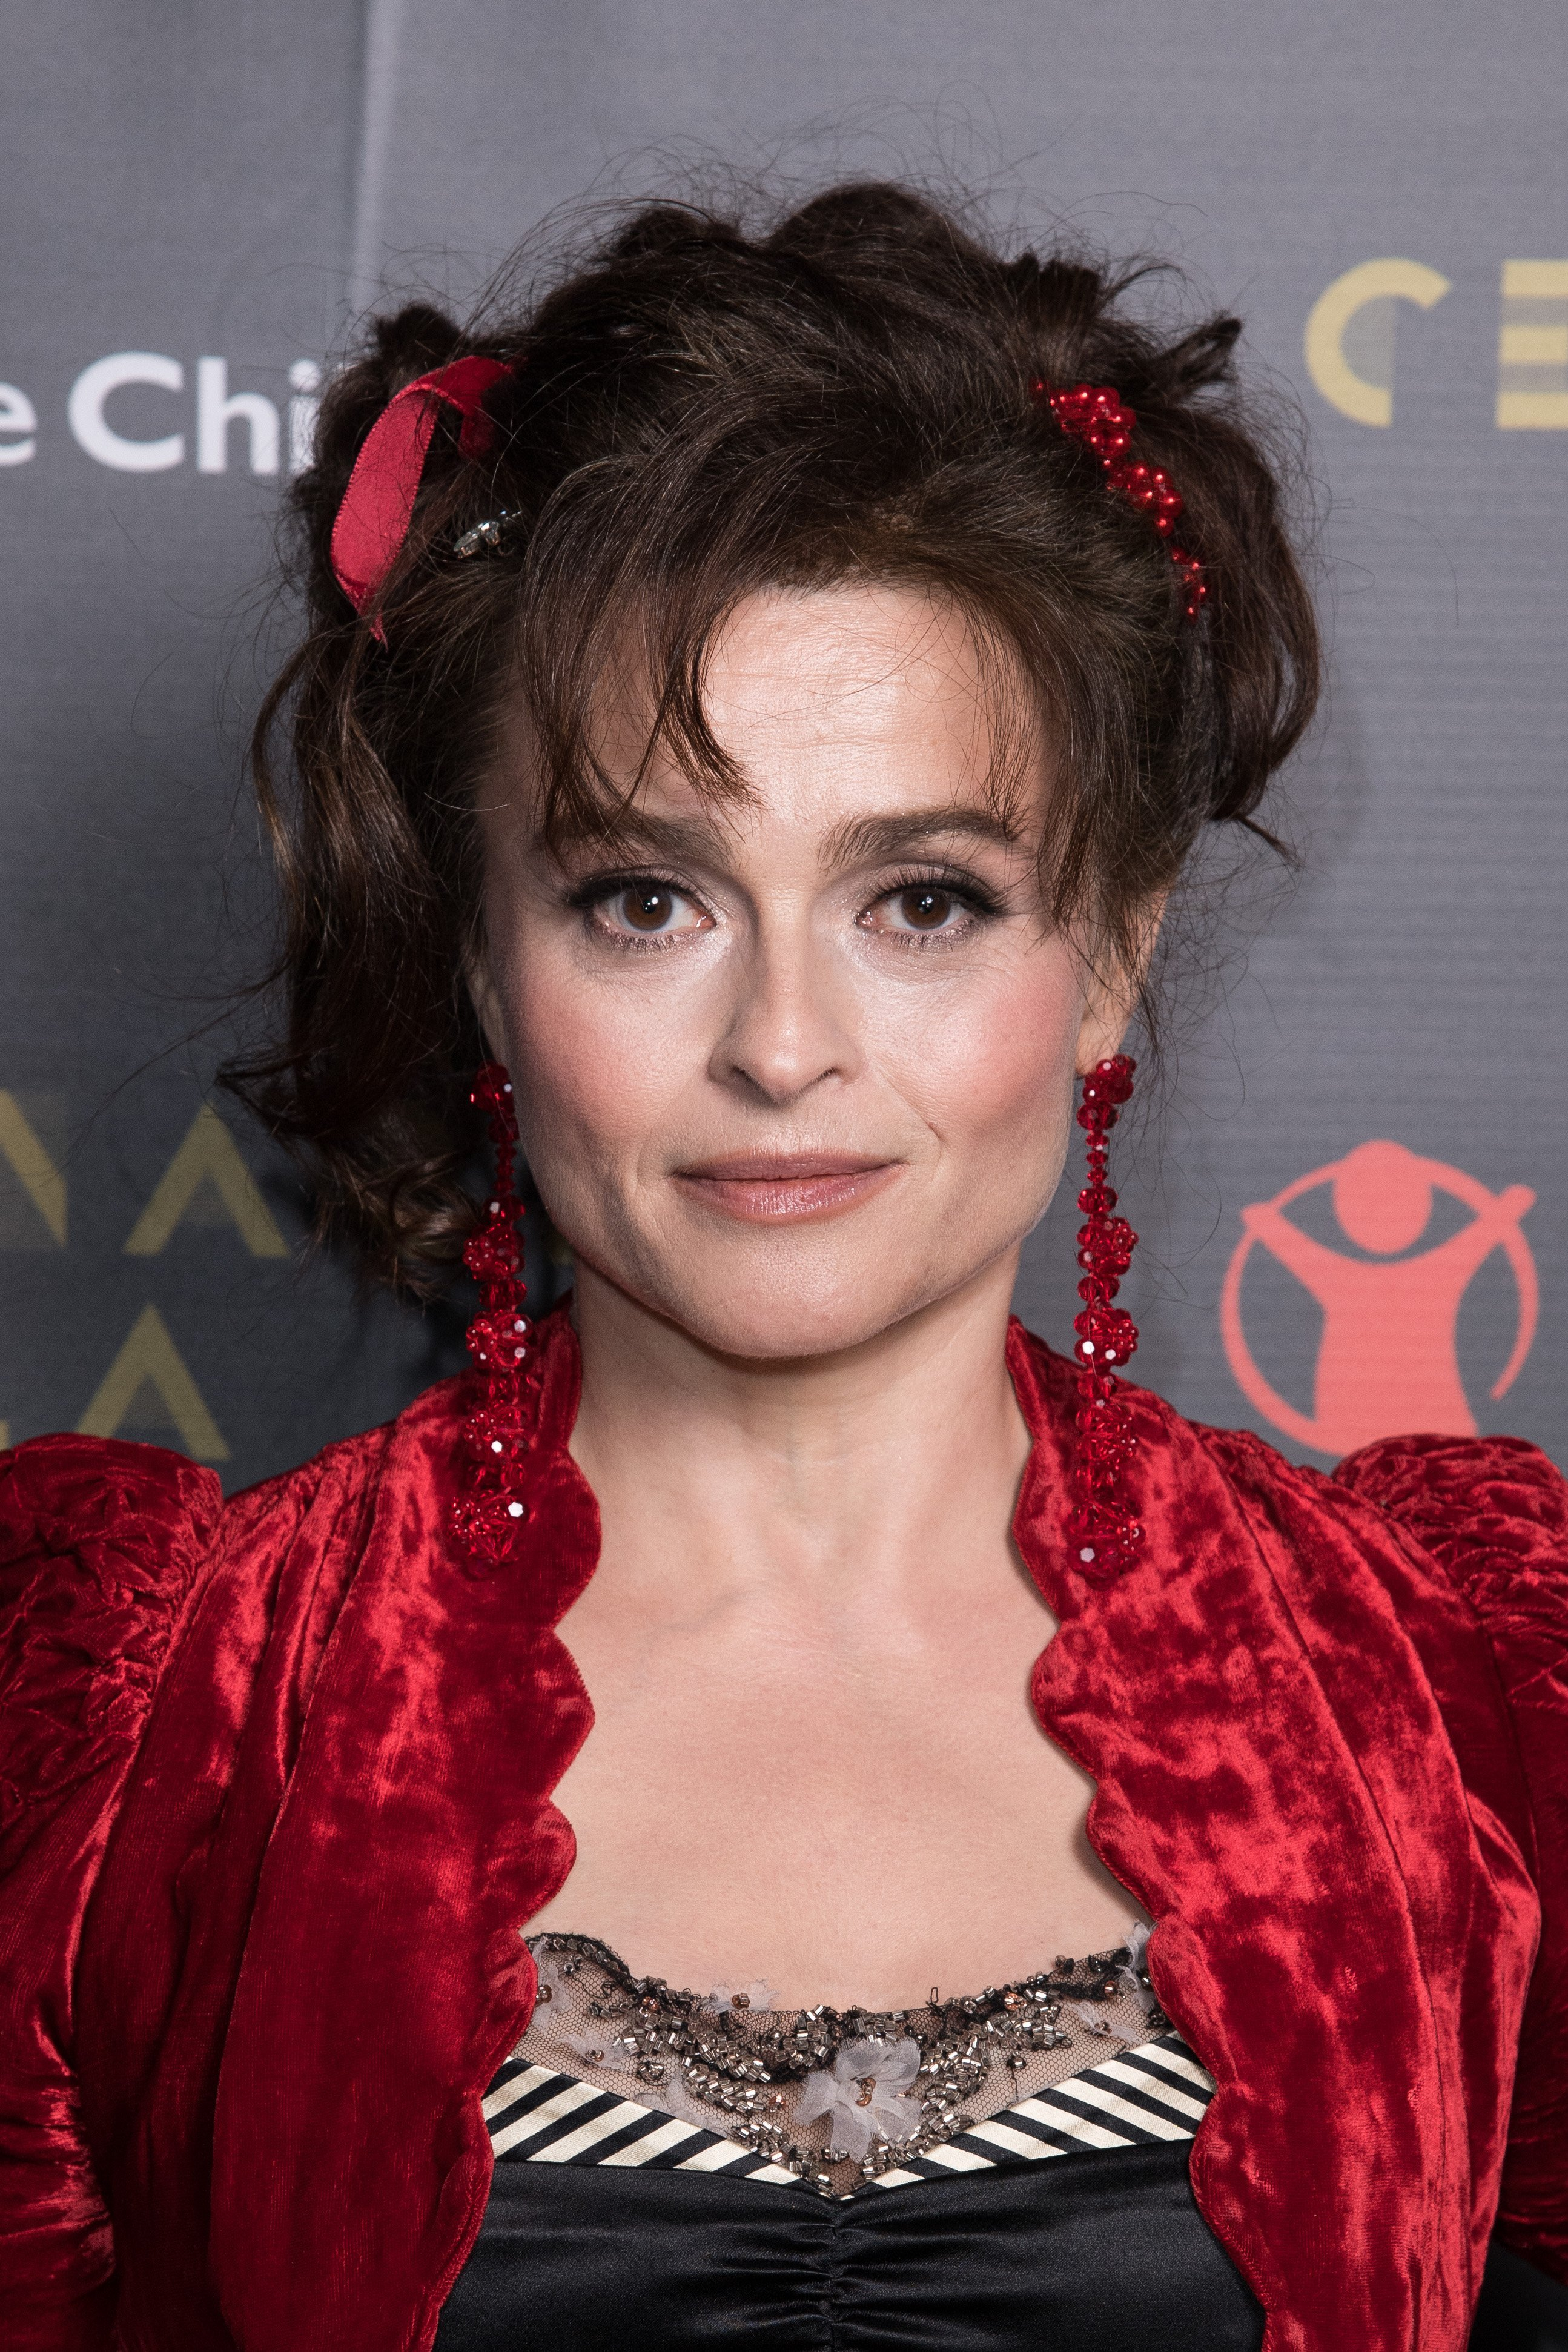 Helena Bonham Carter attends the Save the Children: Centenary Gala in London, England on May 9, 2019 | Photo: Getty Images